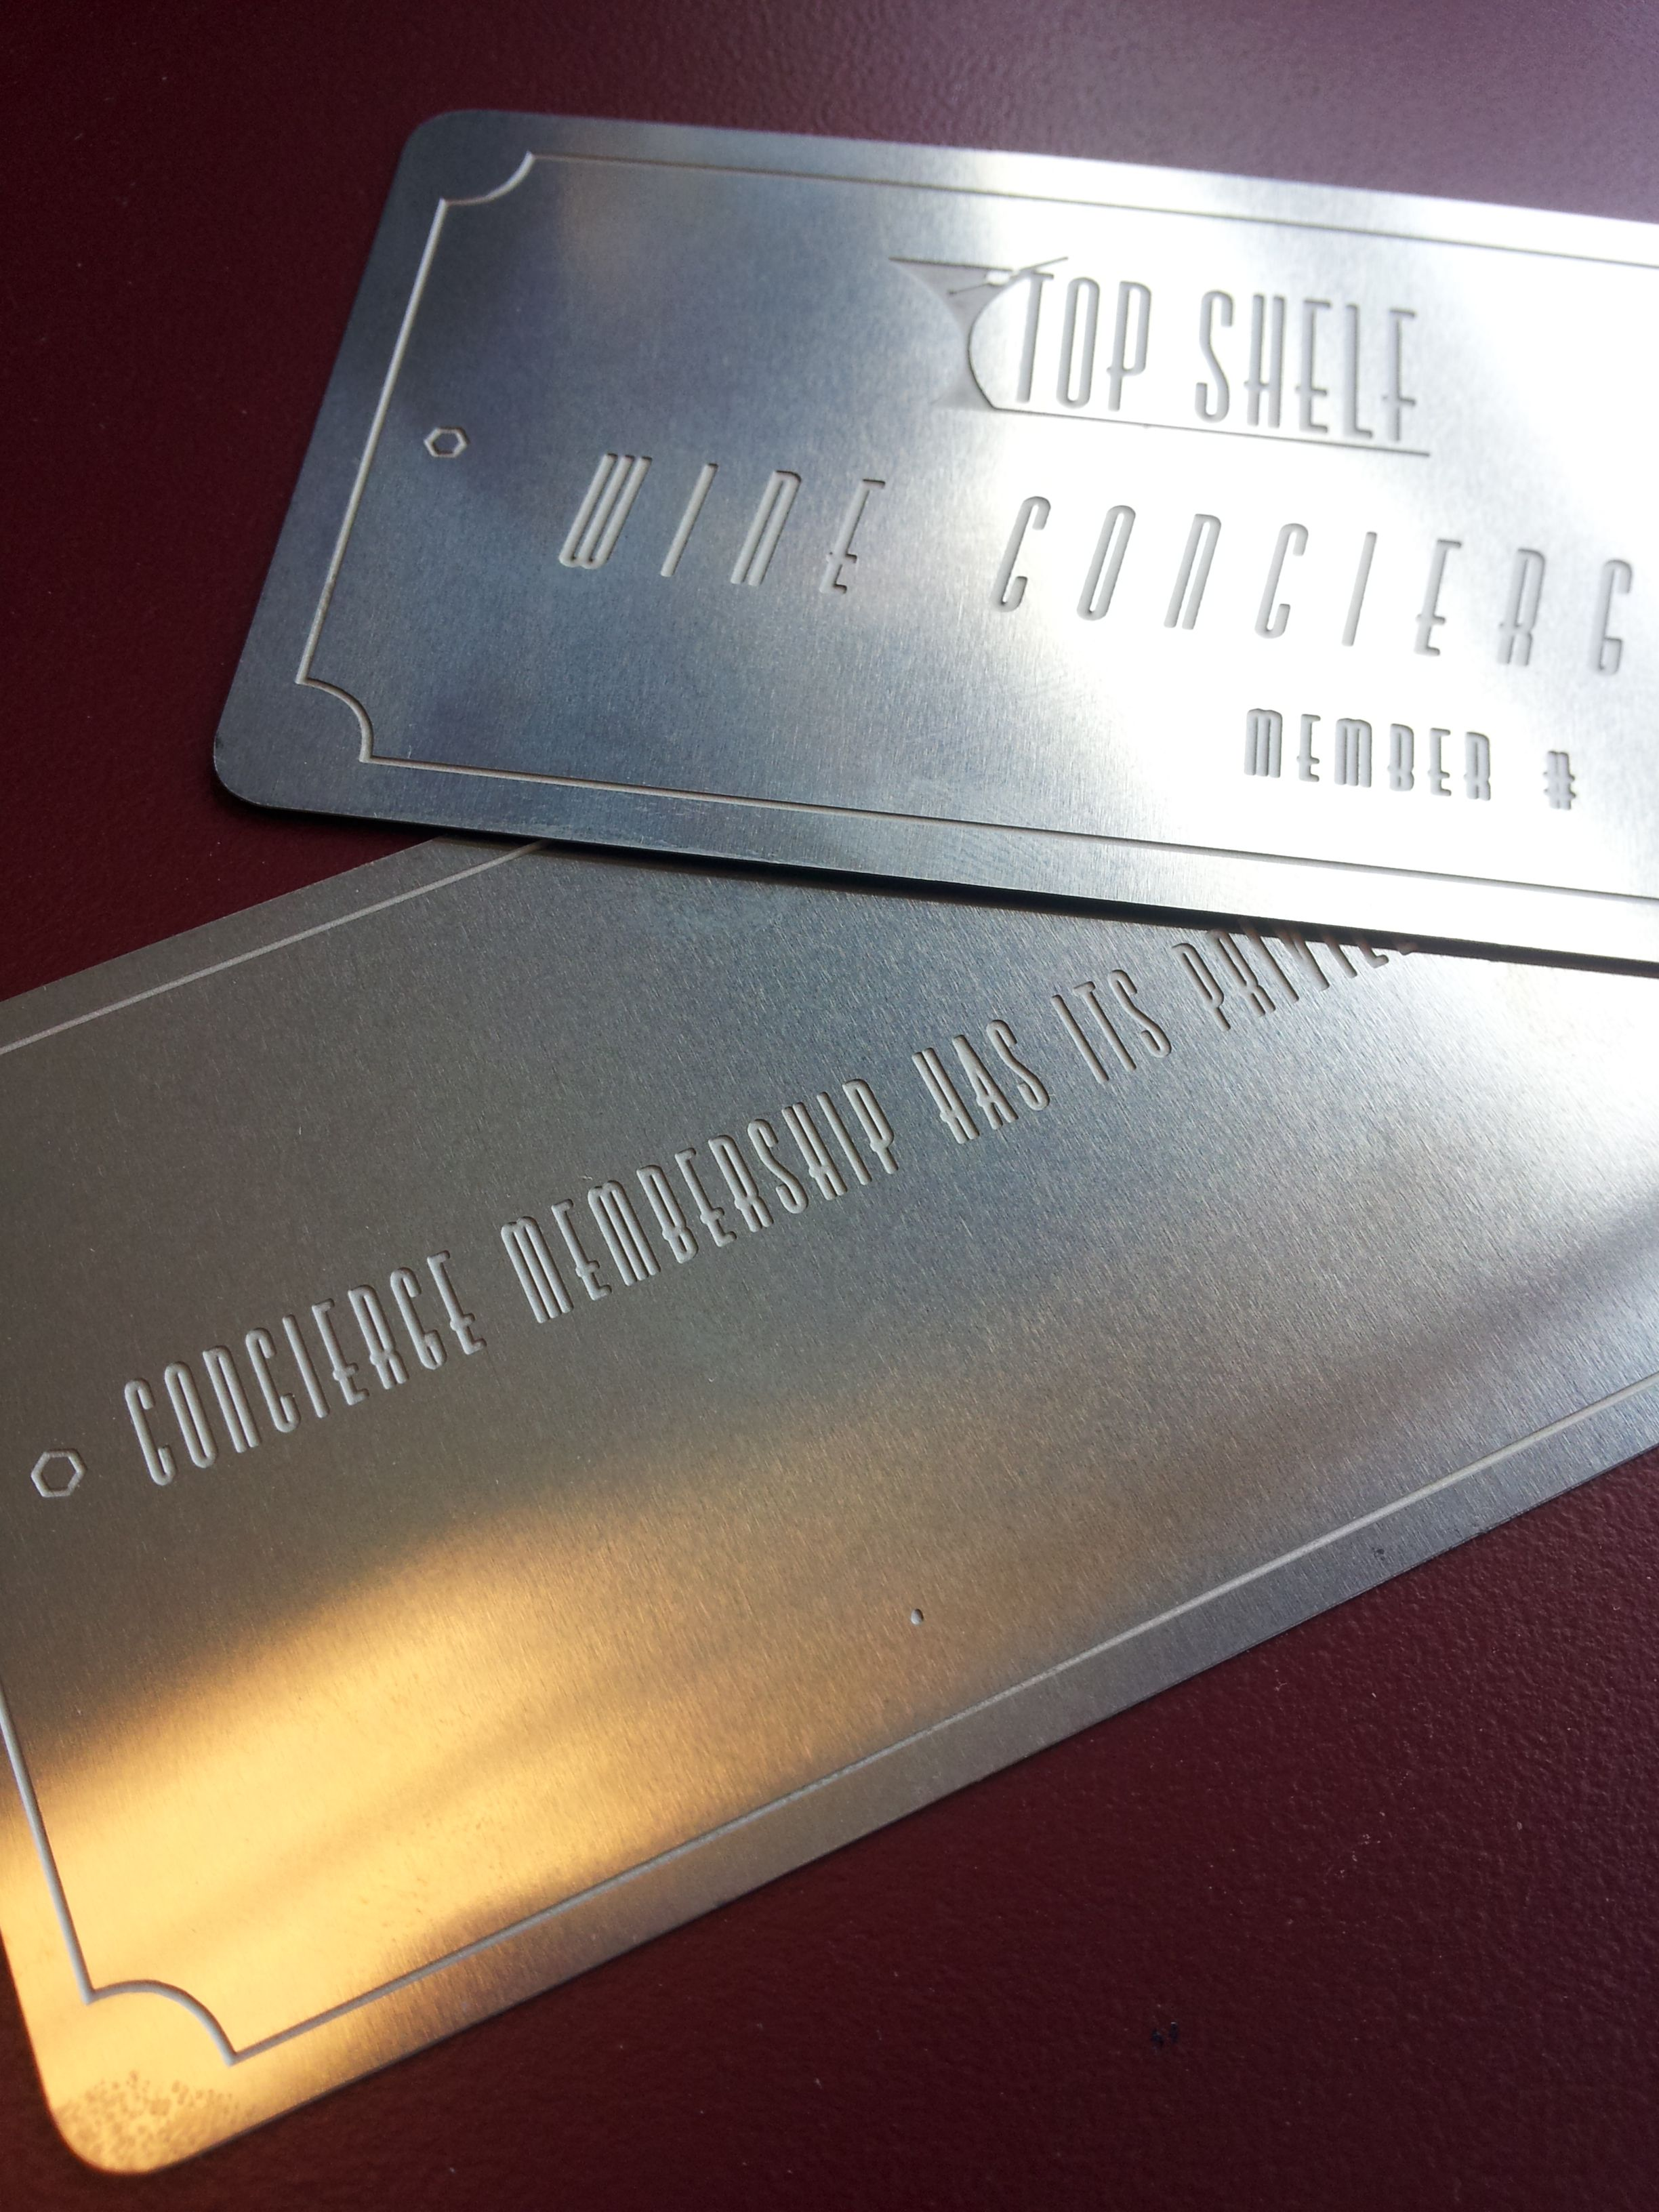 Etched metal business cards! | Branding / Identity | Pinterest ...